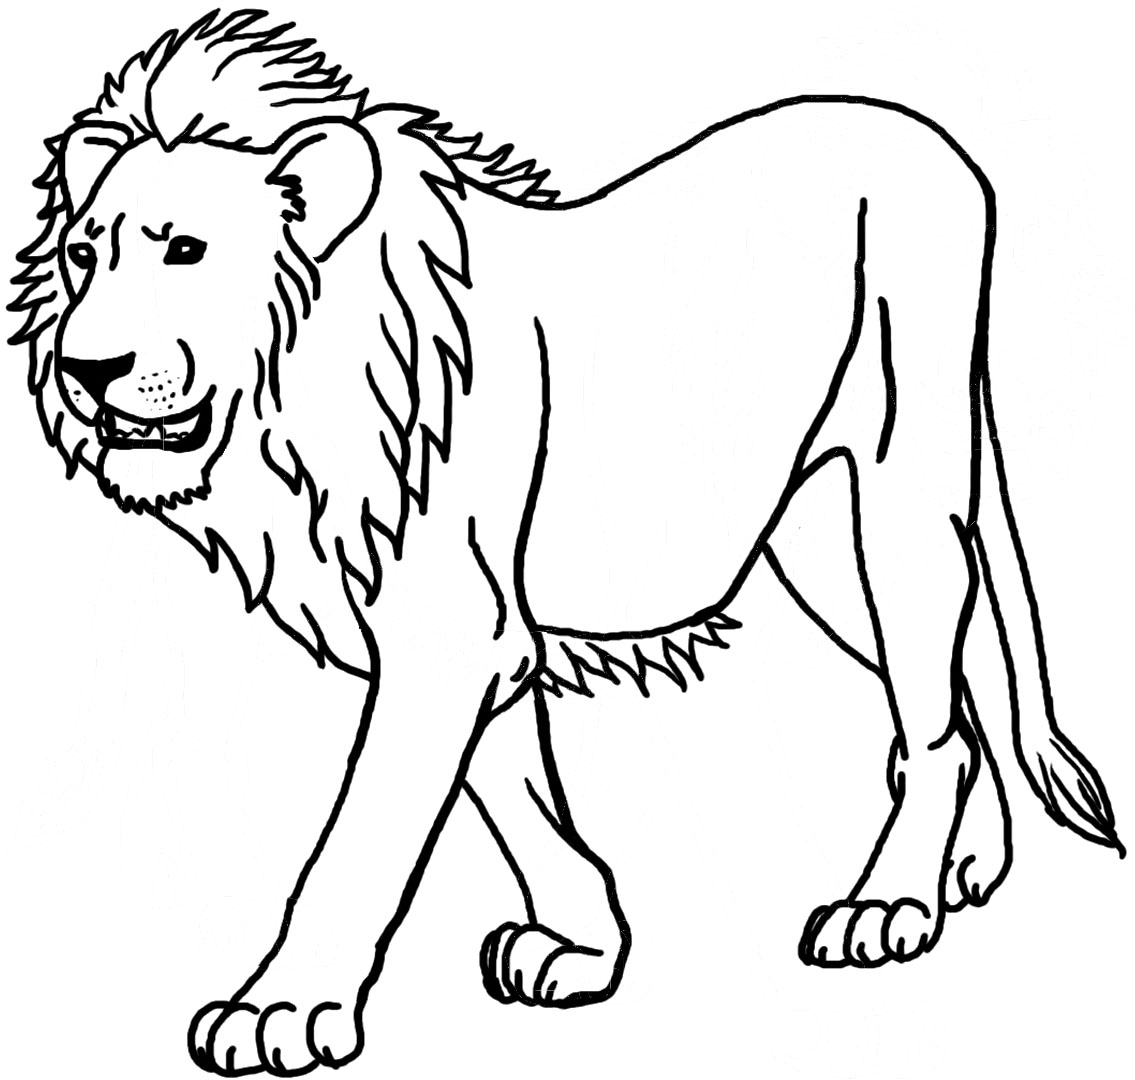 1135x1080 Cool Lions Coloring Pages Gallery Colorings Ch Unknown